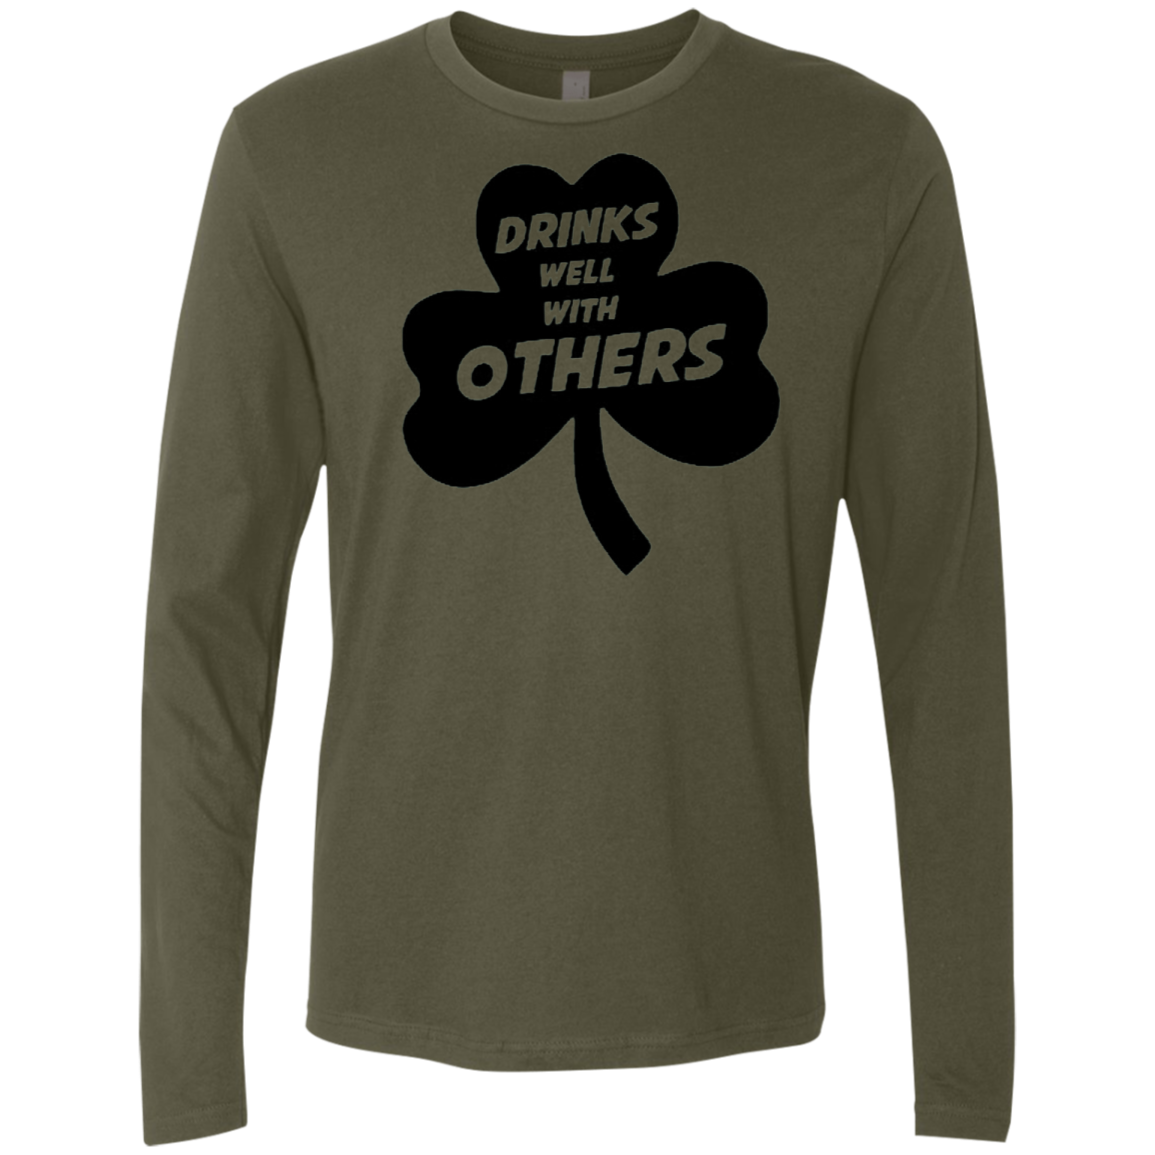 Drinks Well With Others Men's Long Sleeve Tee